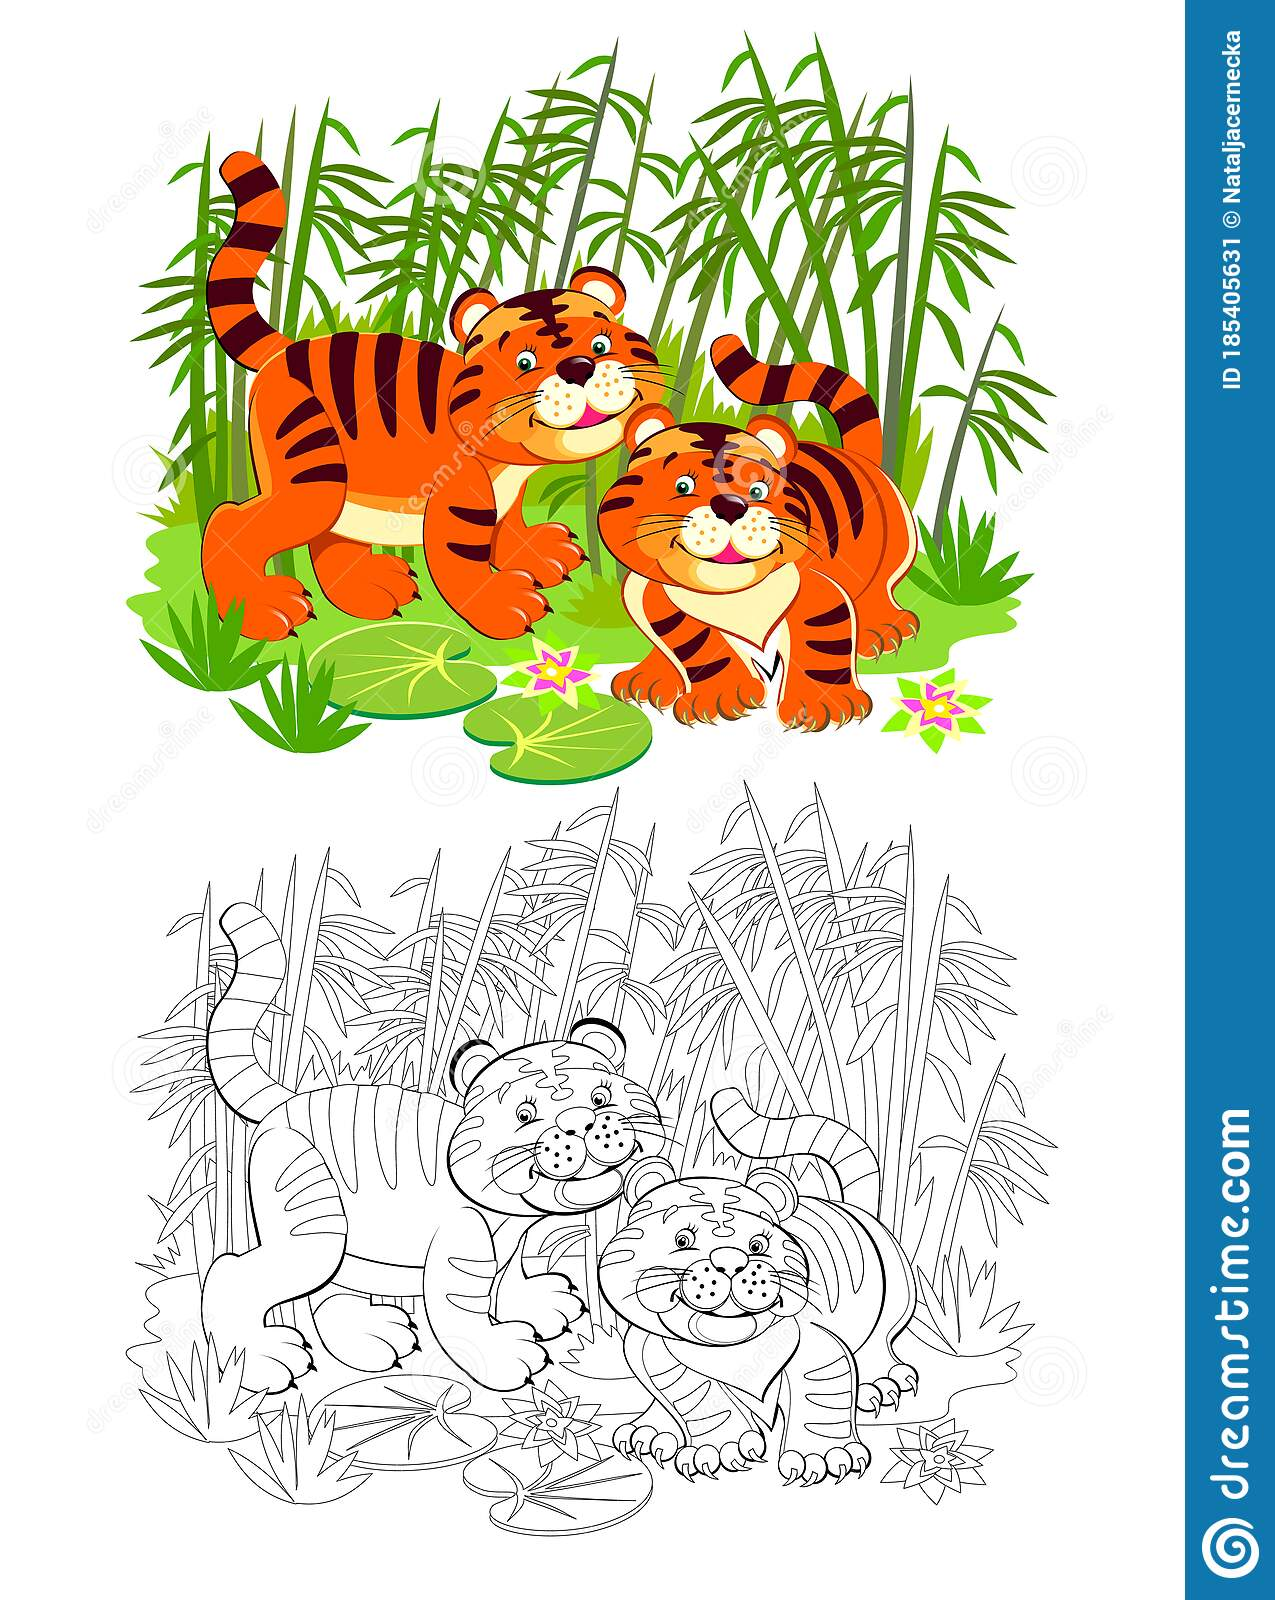 Page For Coloring Book Illustration Of Two Cute Toy